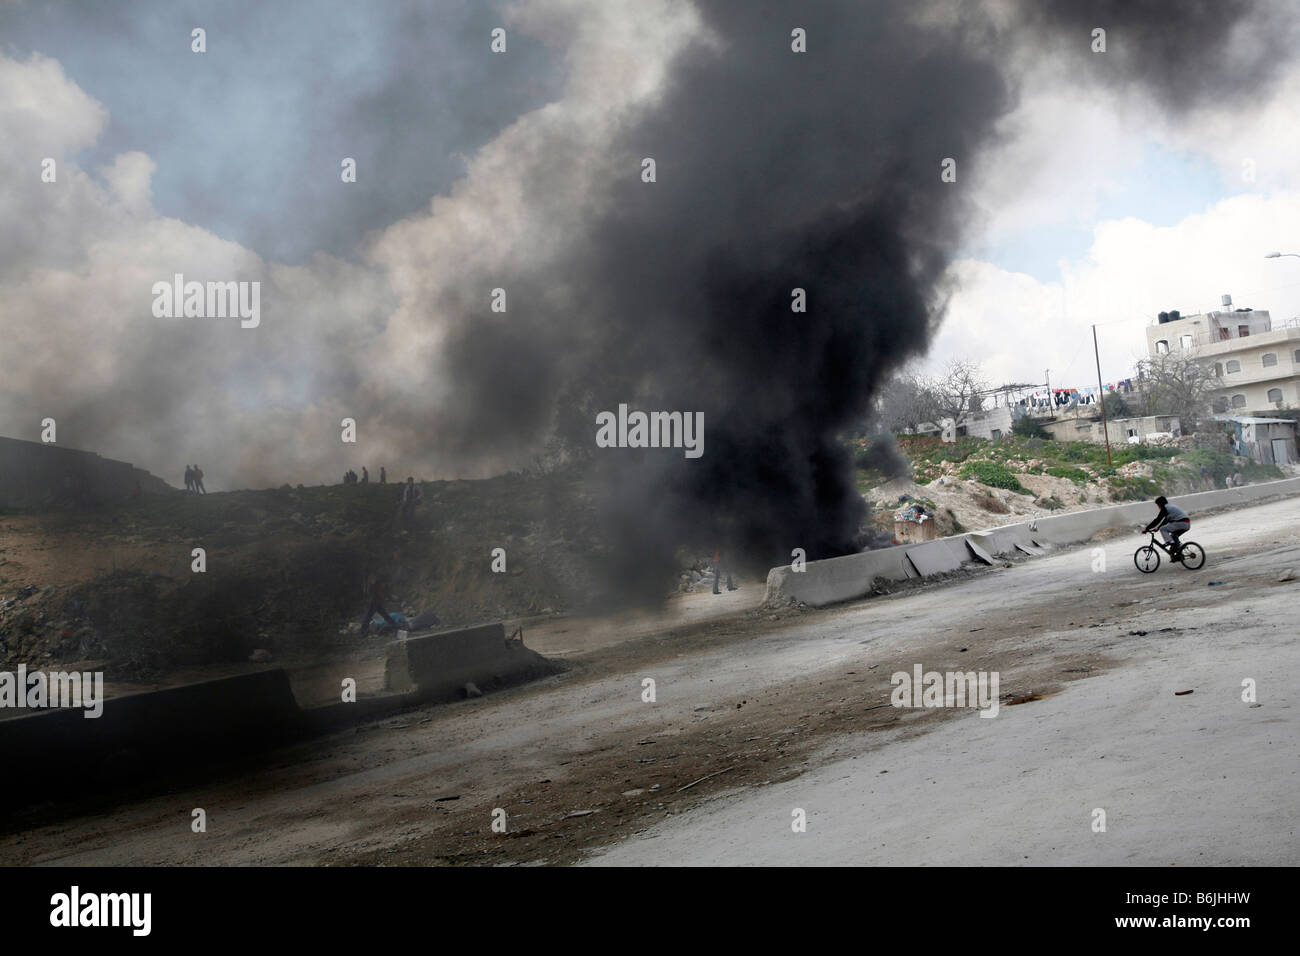 A Palestinian boy cycles through smoke from burning tyes during a protest in the West Bank. - Stock Image